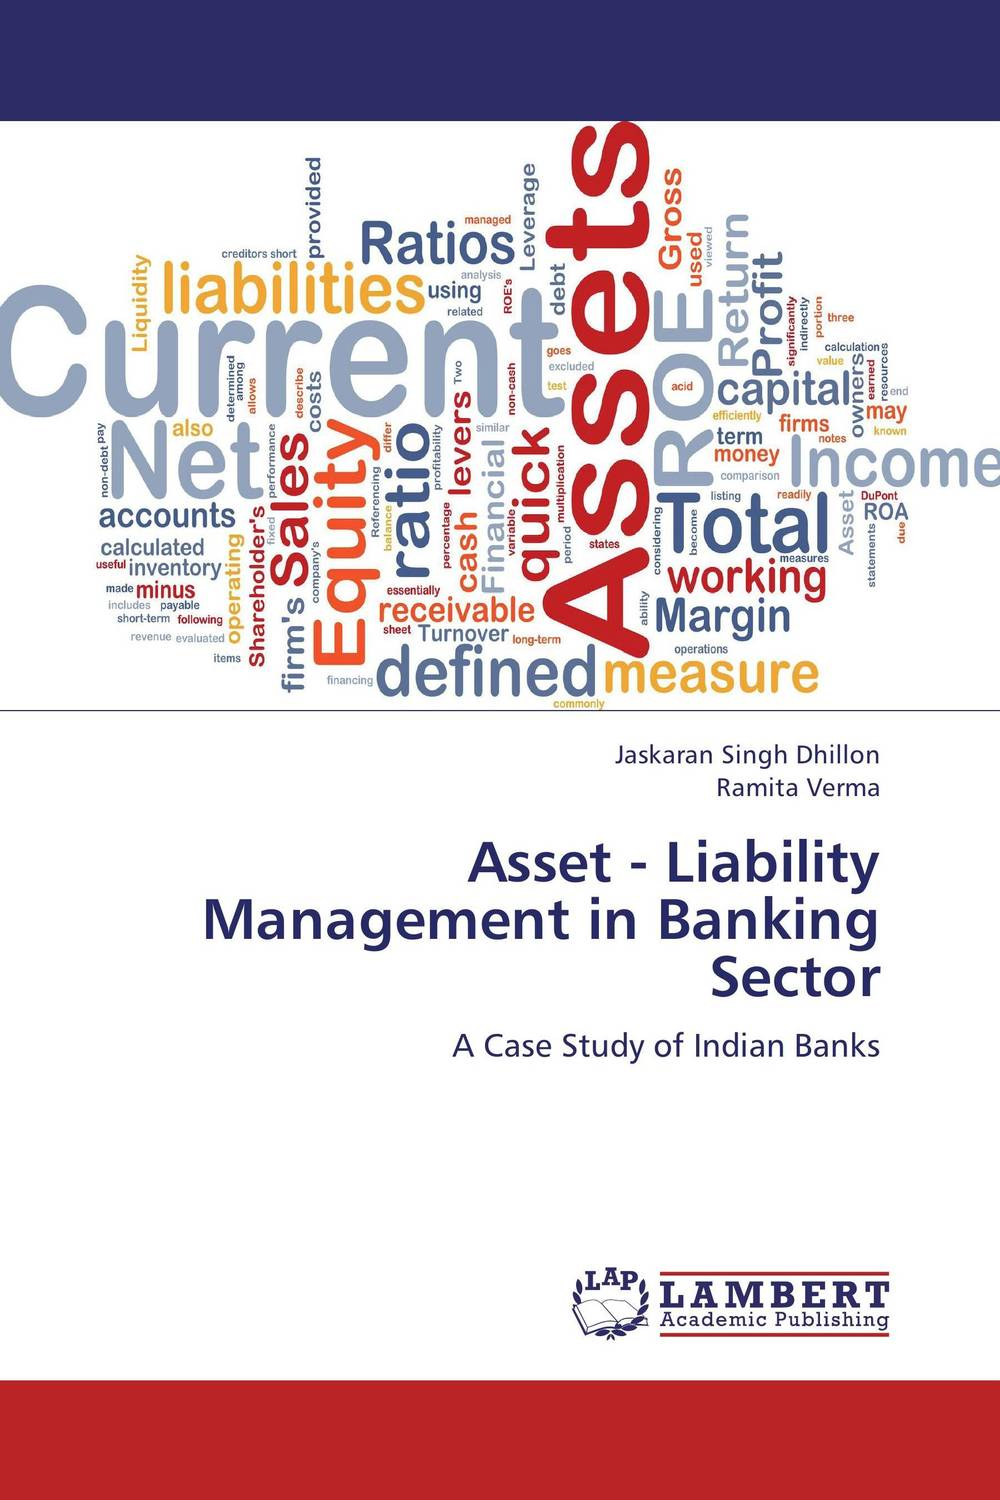 Asset - Liability Management in Banking Sector jahnavi ravula pawan kumar avadhanam and r k mishra credit and risk analysis by banks